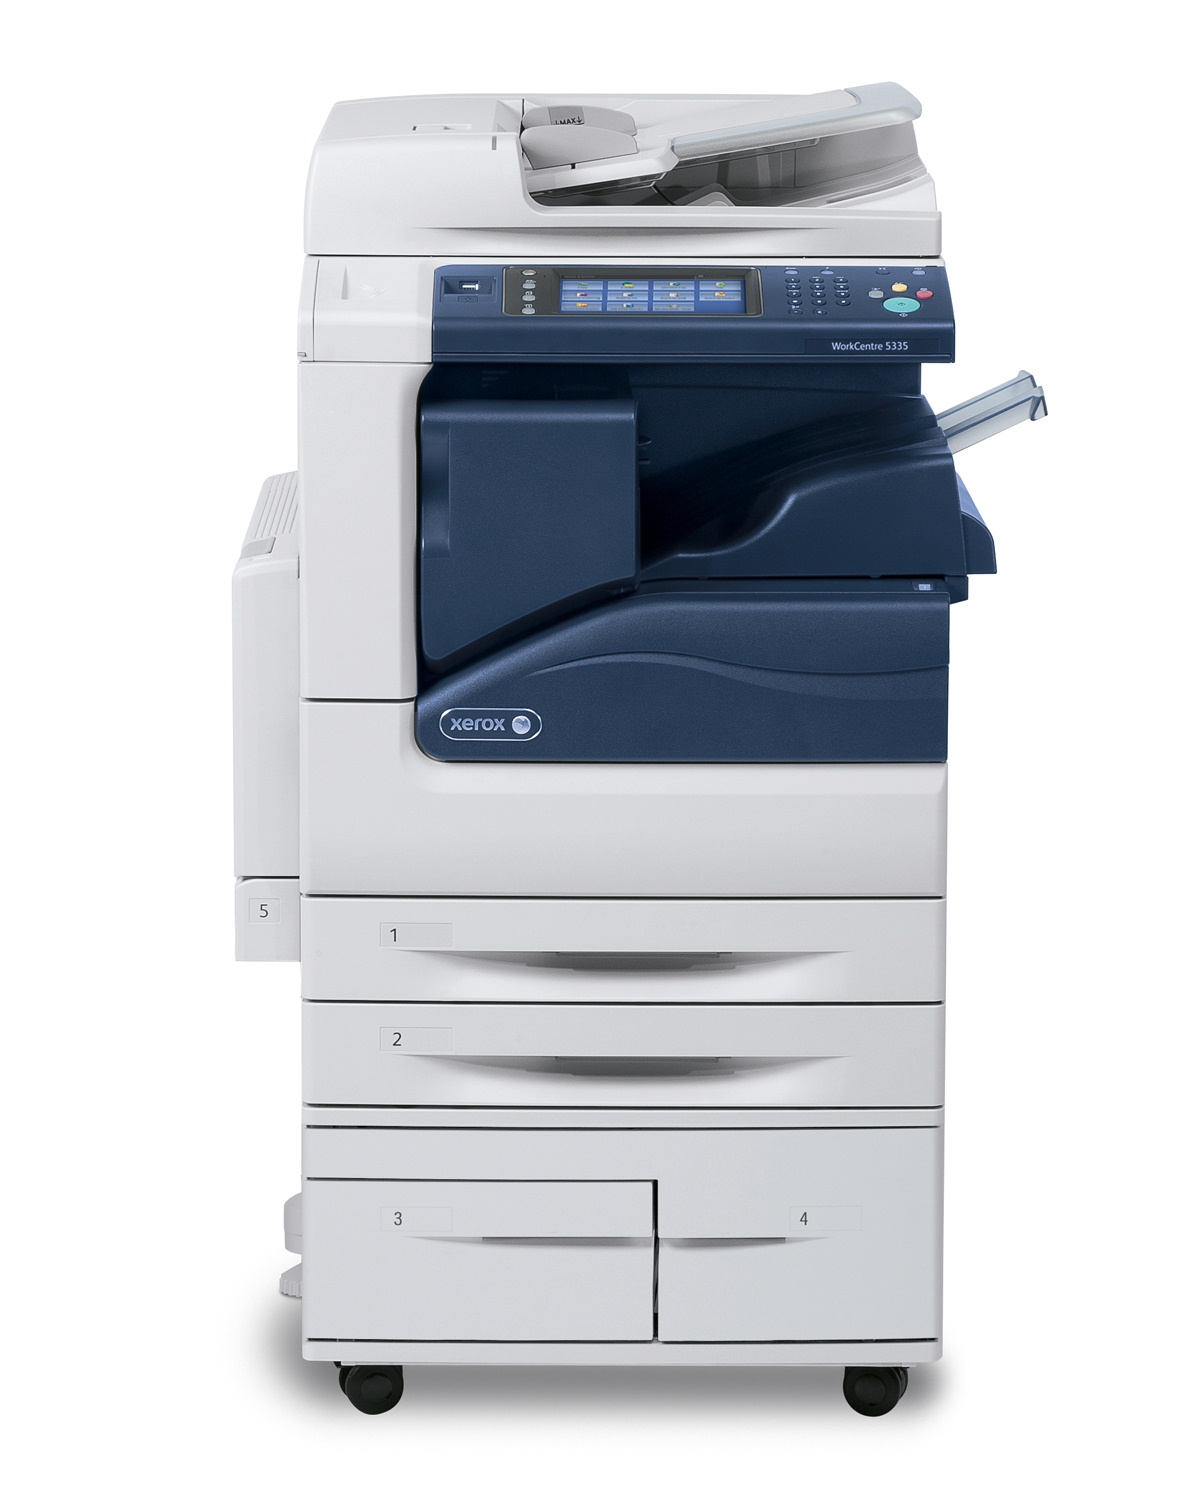 Xerox workcentre 5325 details the